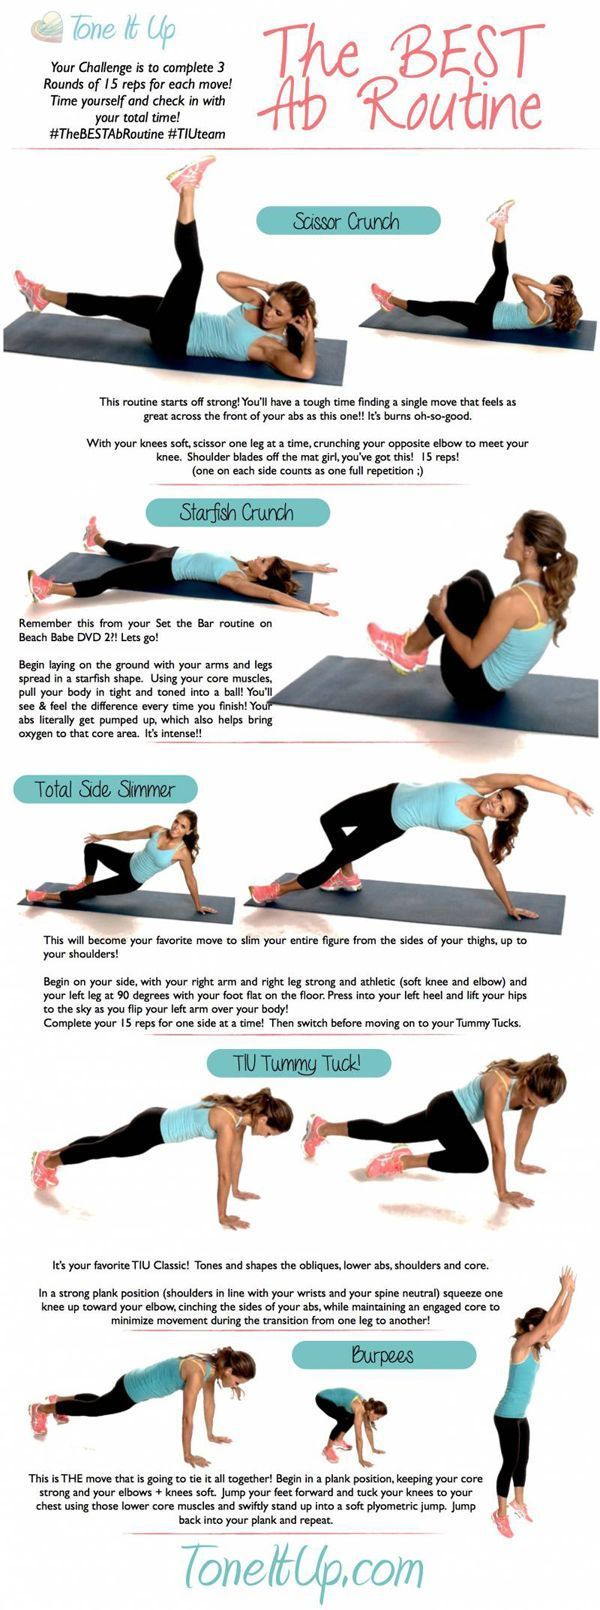 The Best Ab Routine abs fitness exercise home exercise diy exercise routine ab workout 6 pack exercise routine